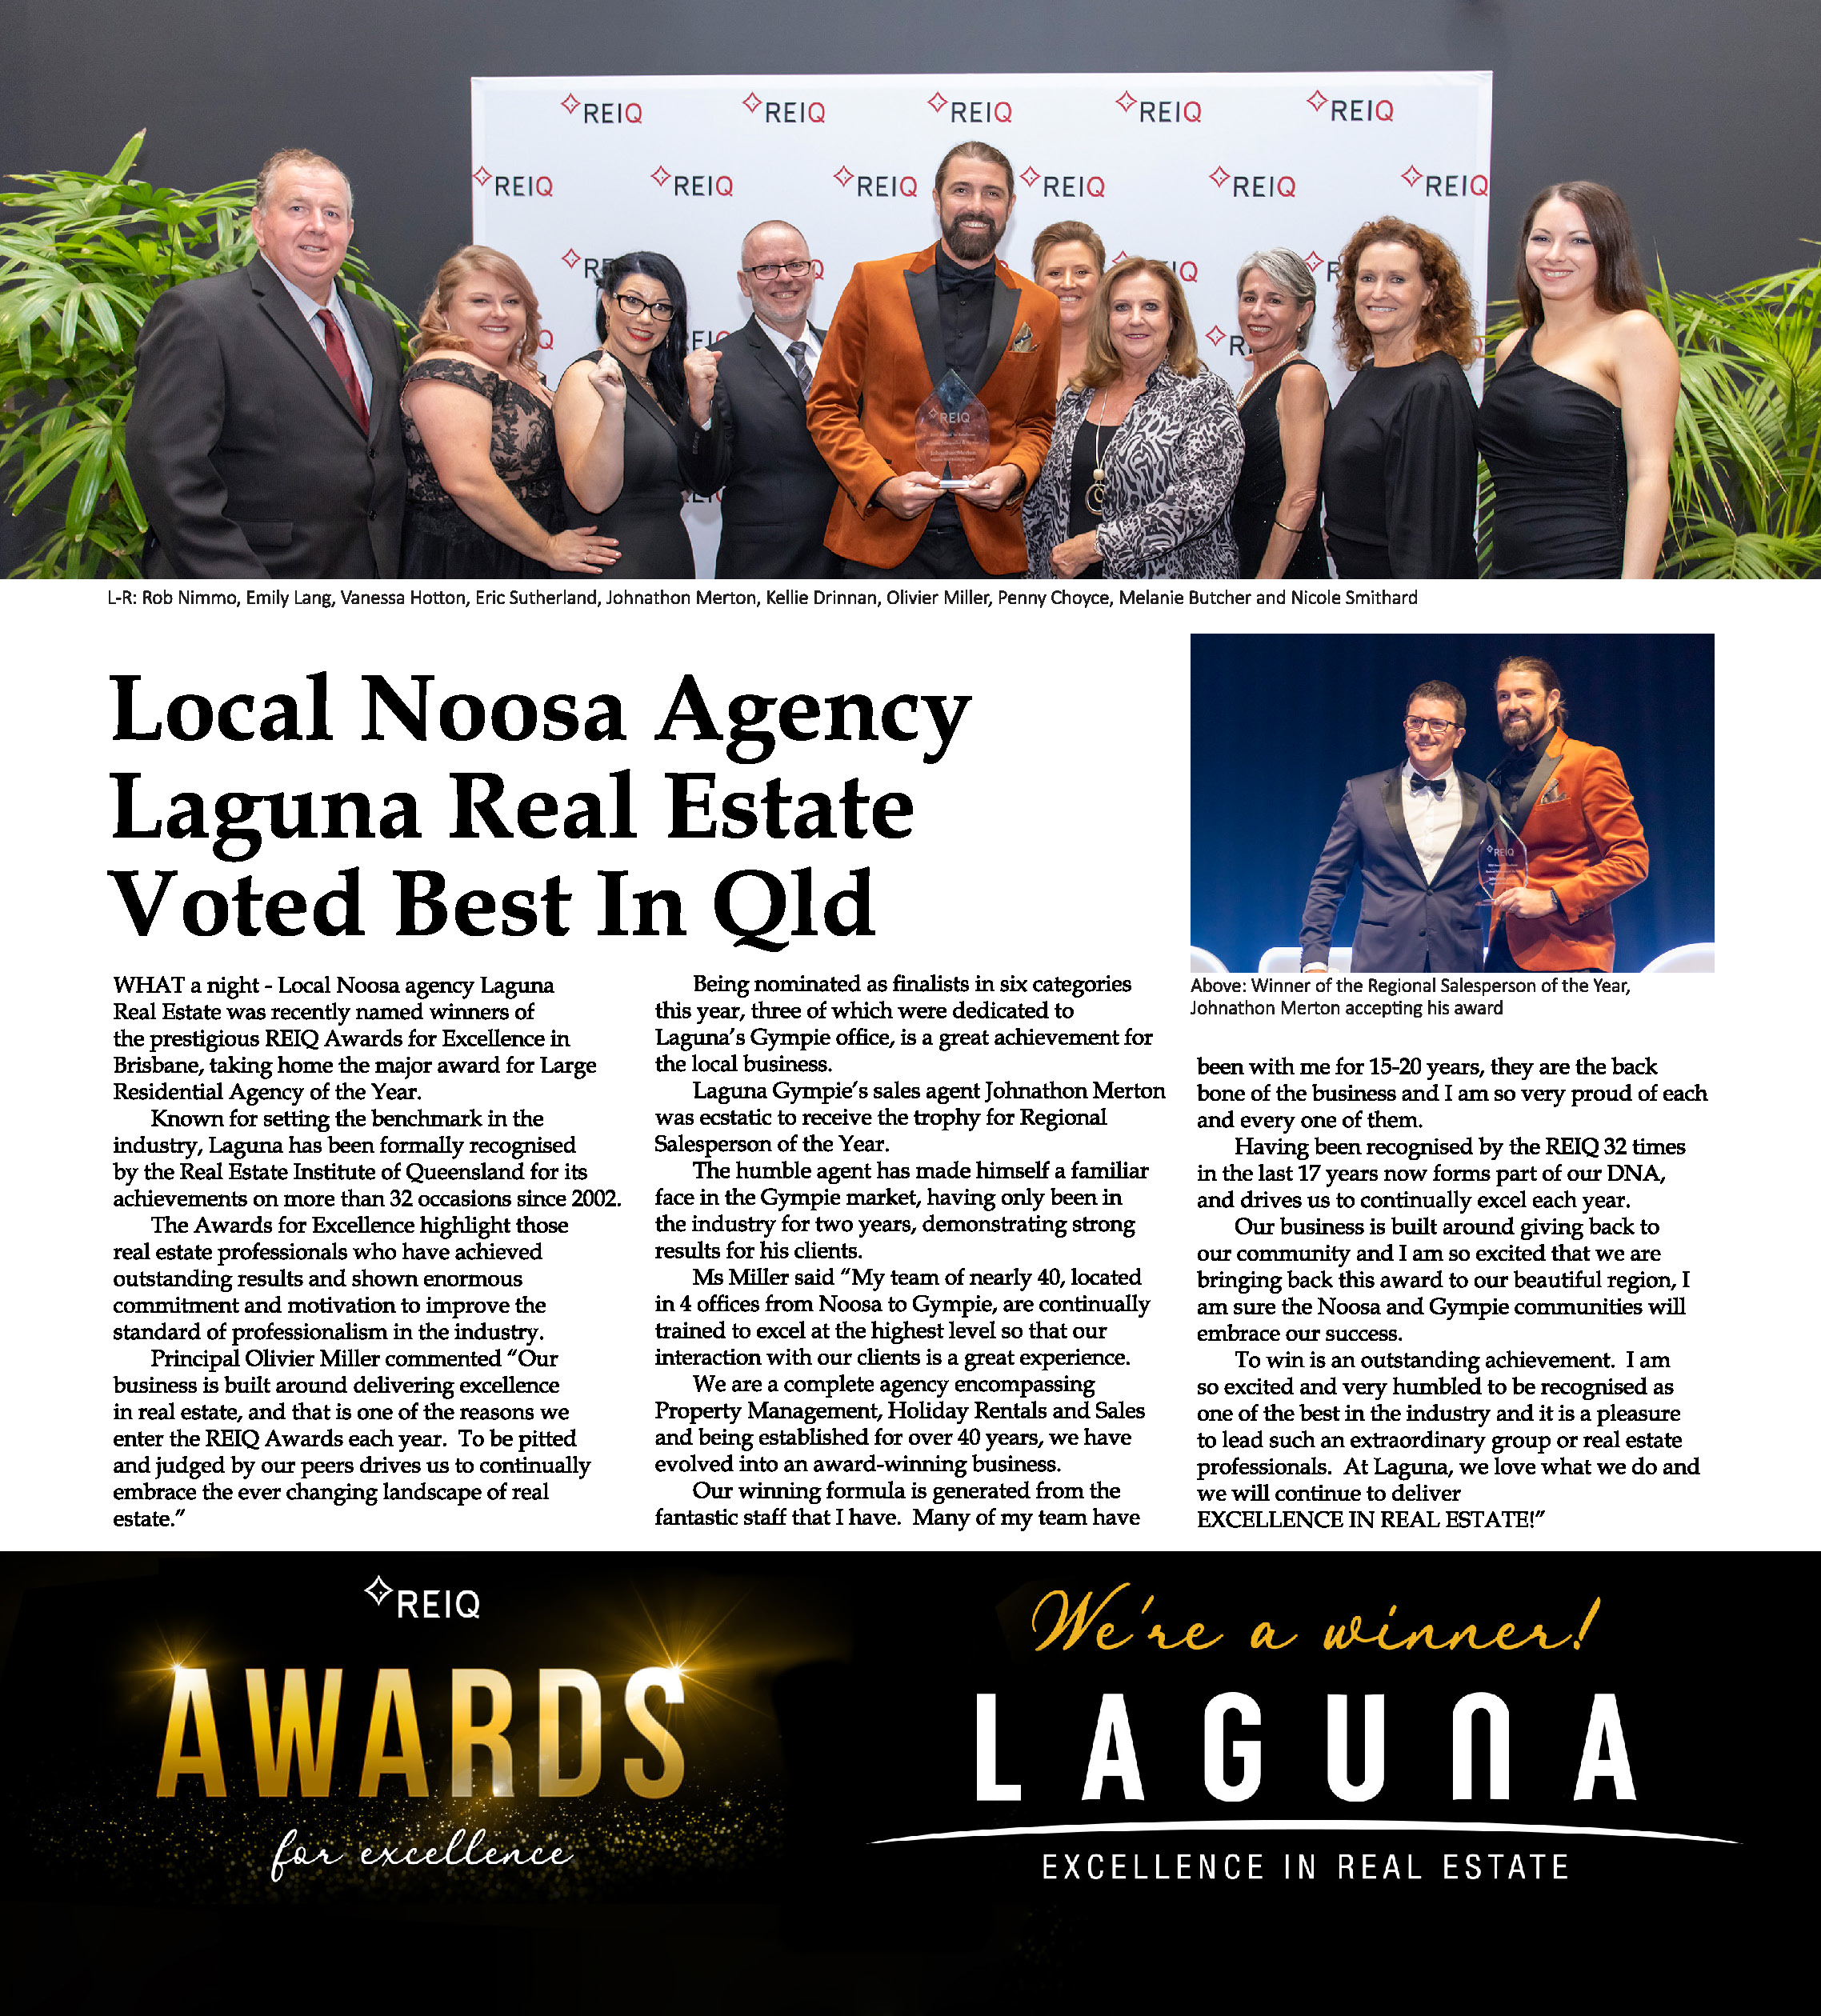 https://assets.boxdice.com.au/laguna/attachments/57d/318/reiq_awards_promo_friday_back_page_270320_final.jpg?0d37cf44f79b9bf9f59978d51d873978